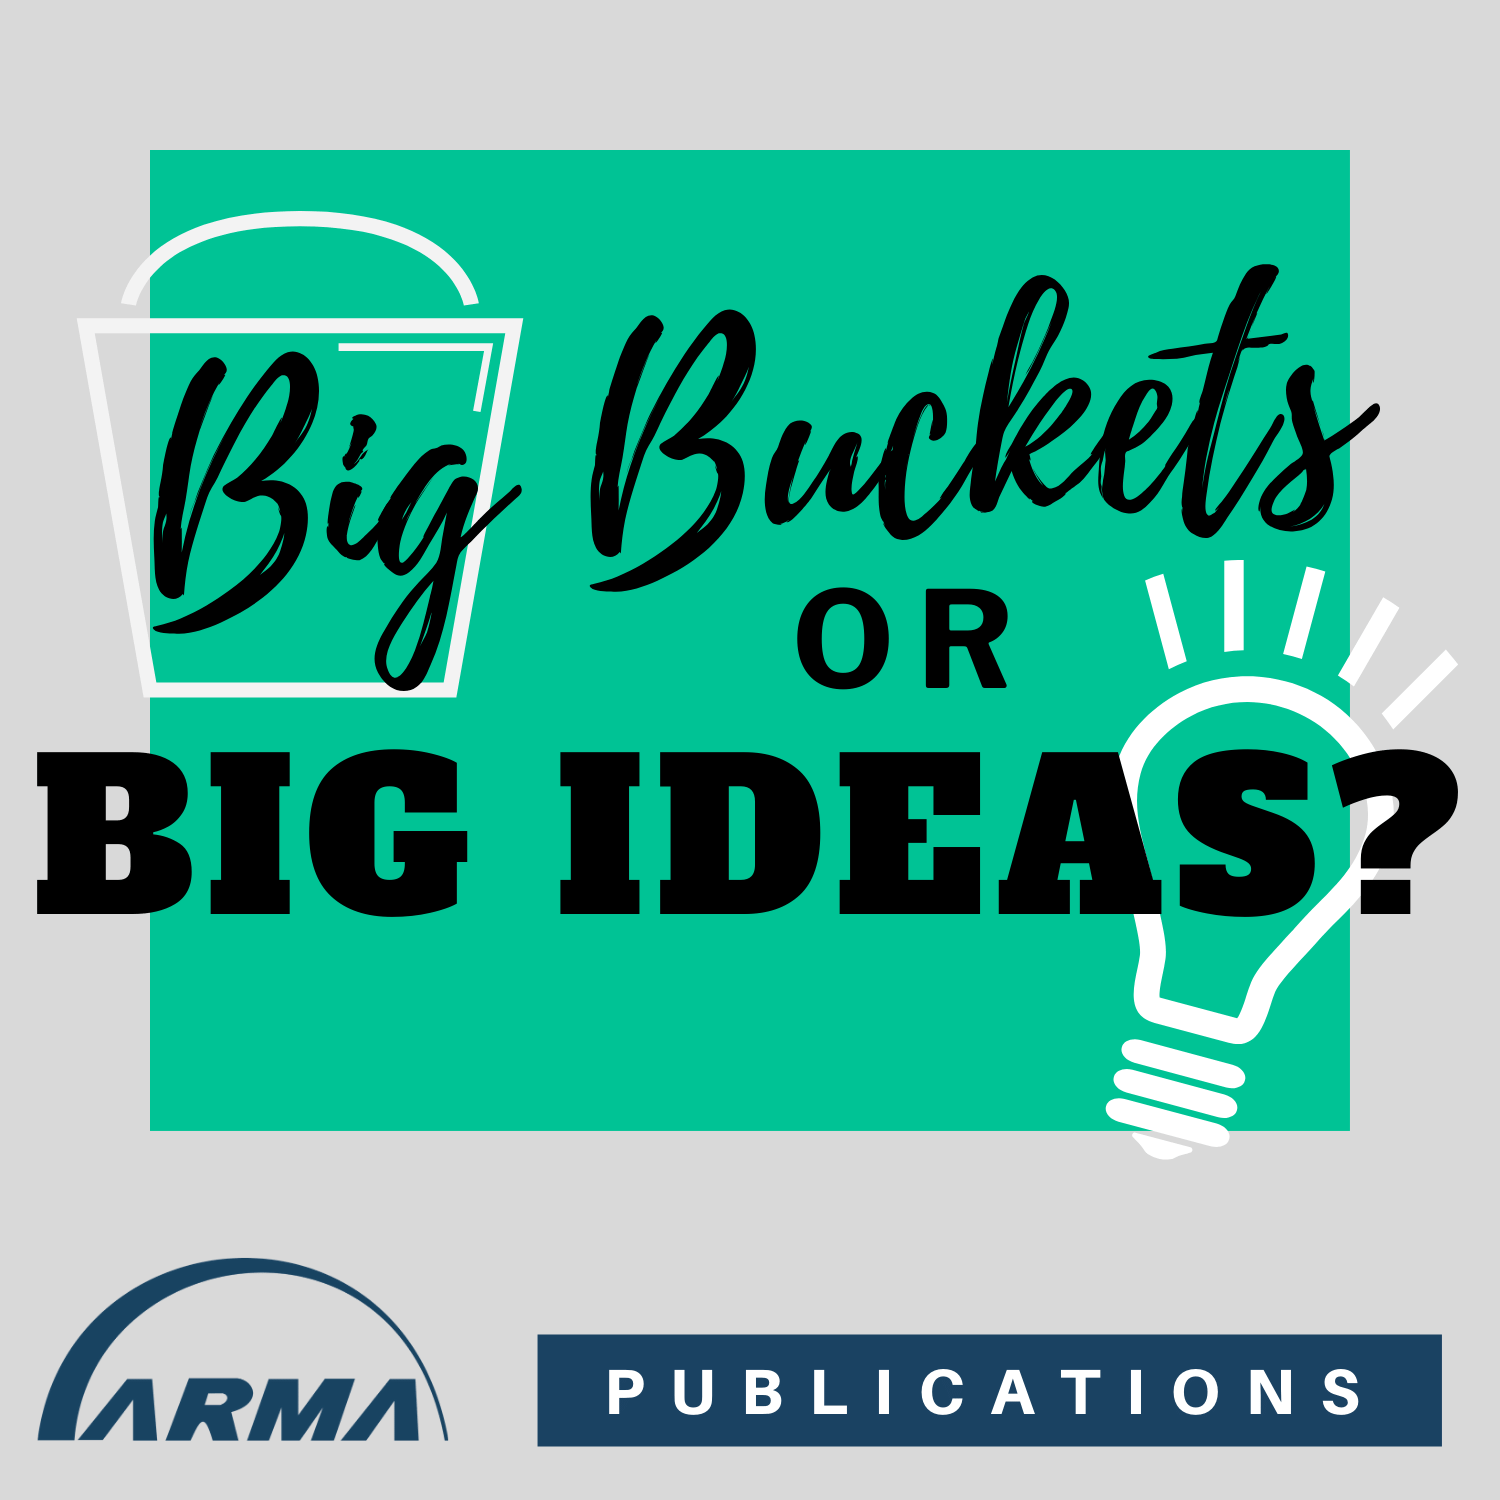 Big Buckets or Big Ideas?